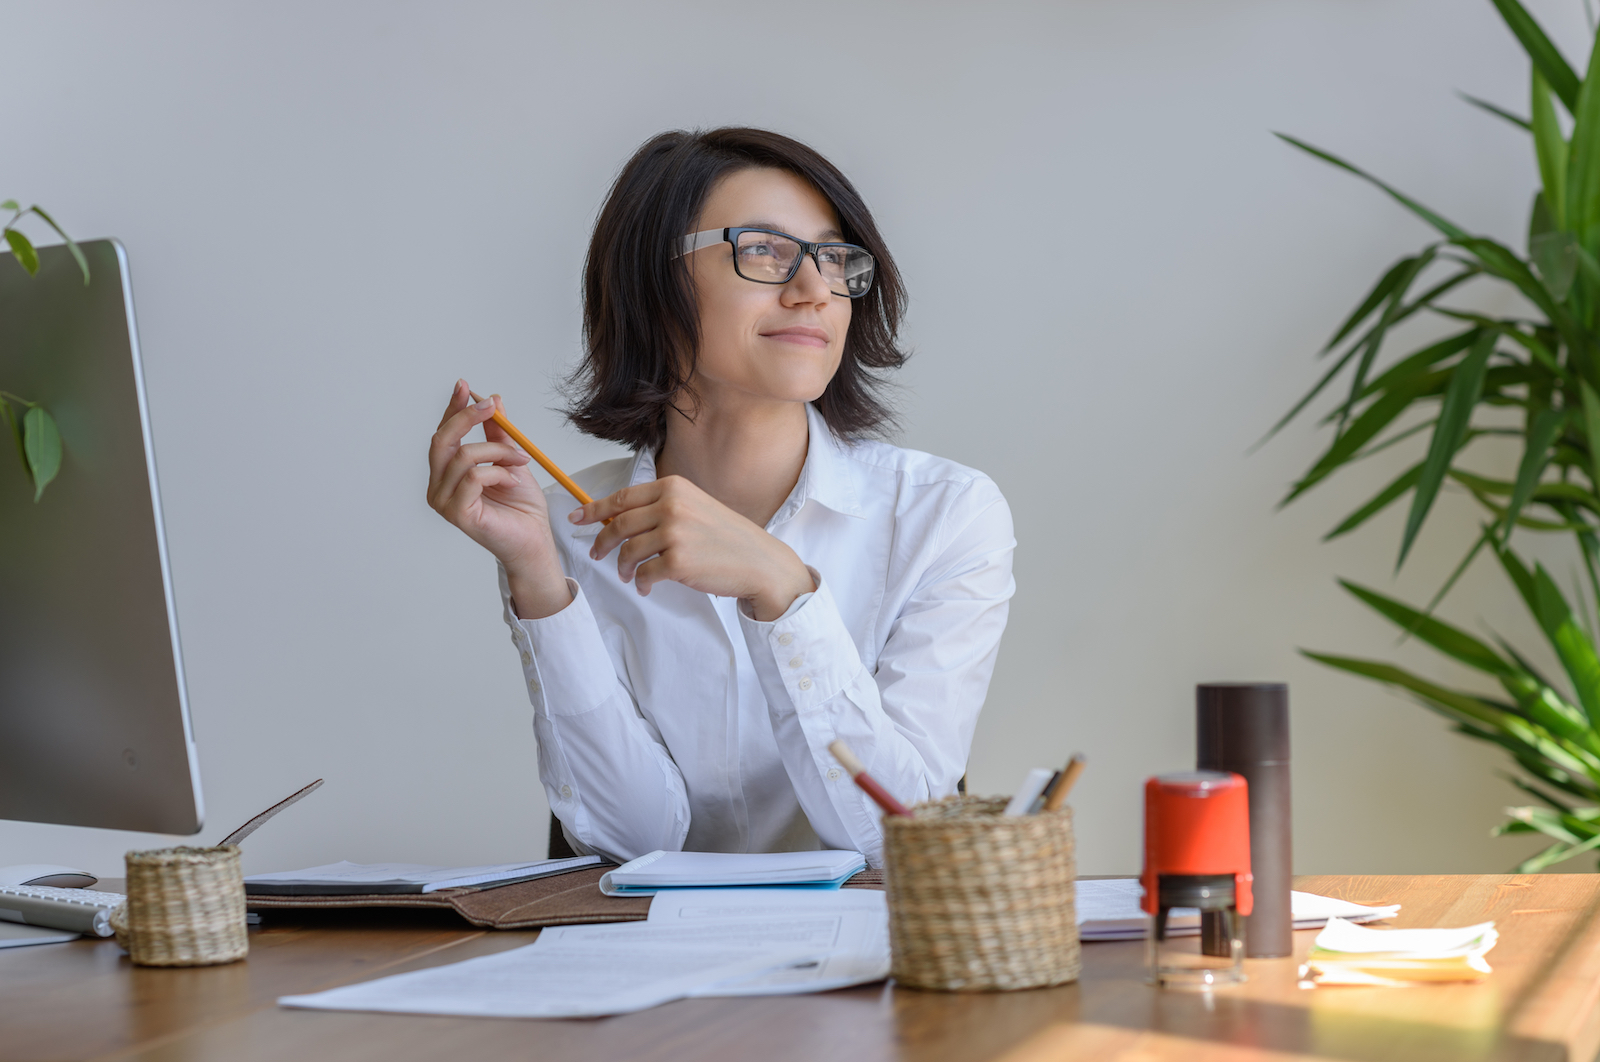 Woman In Office | 8 Extremely Useful (Some Free) Social Media Marketing Tools